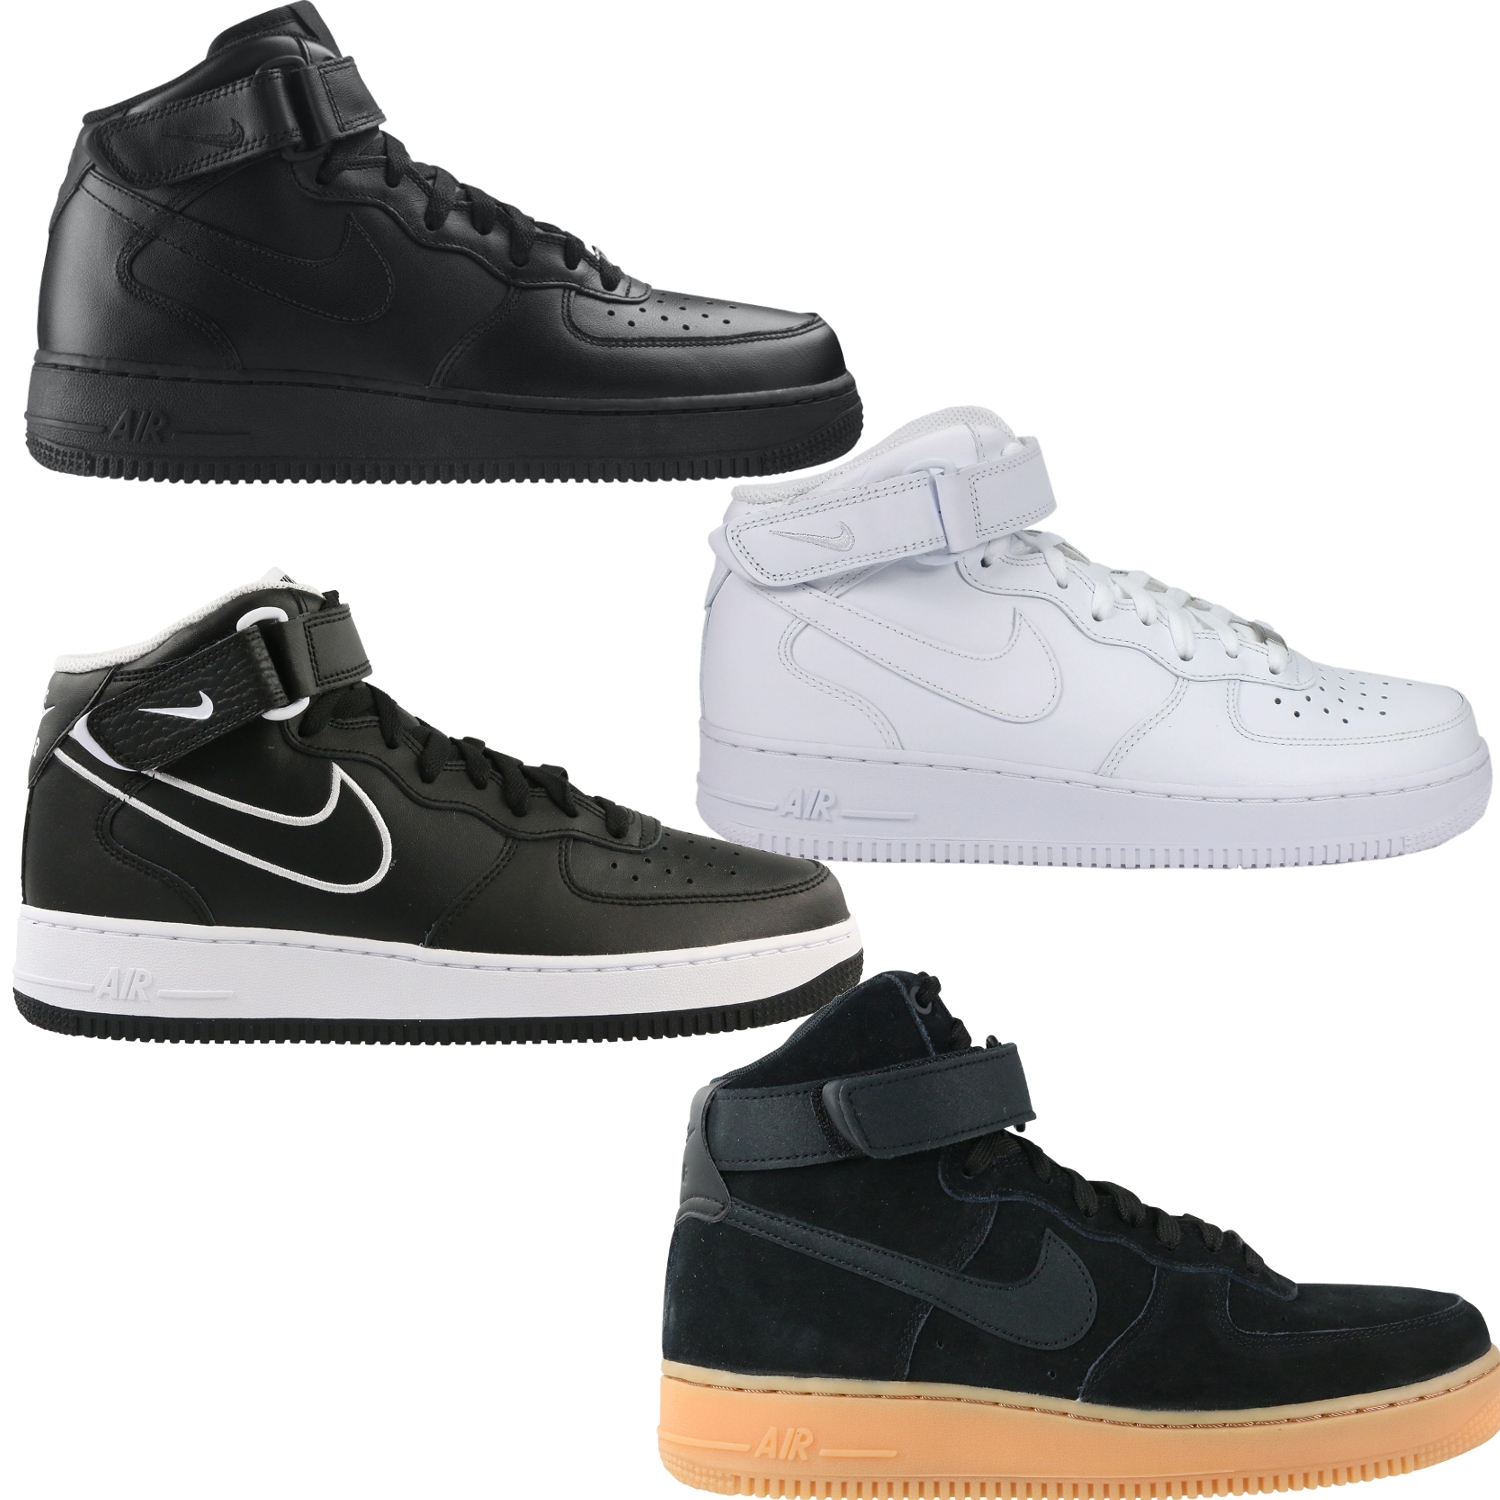 Details zu Nike Air Force 1 Mid 07 LV8 Herren